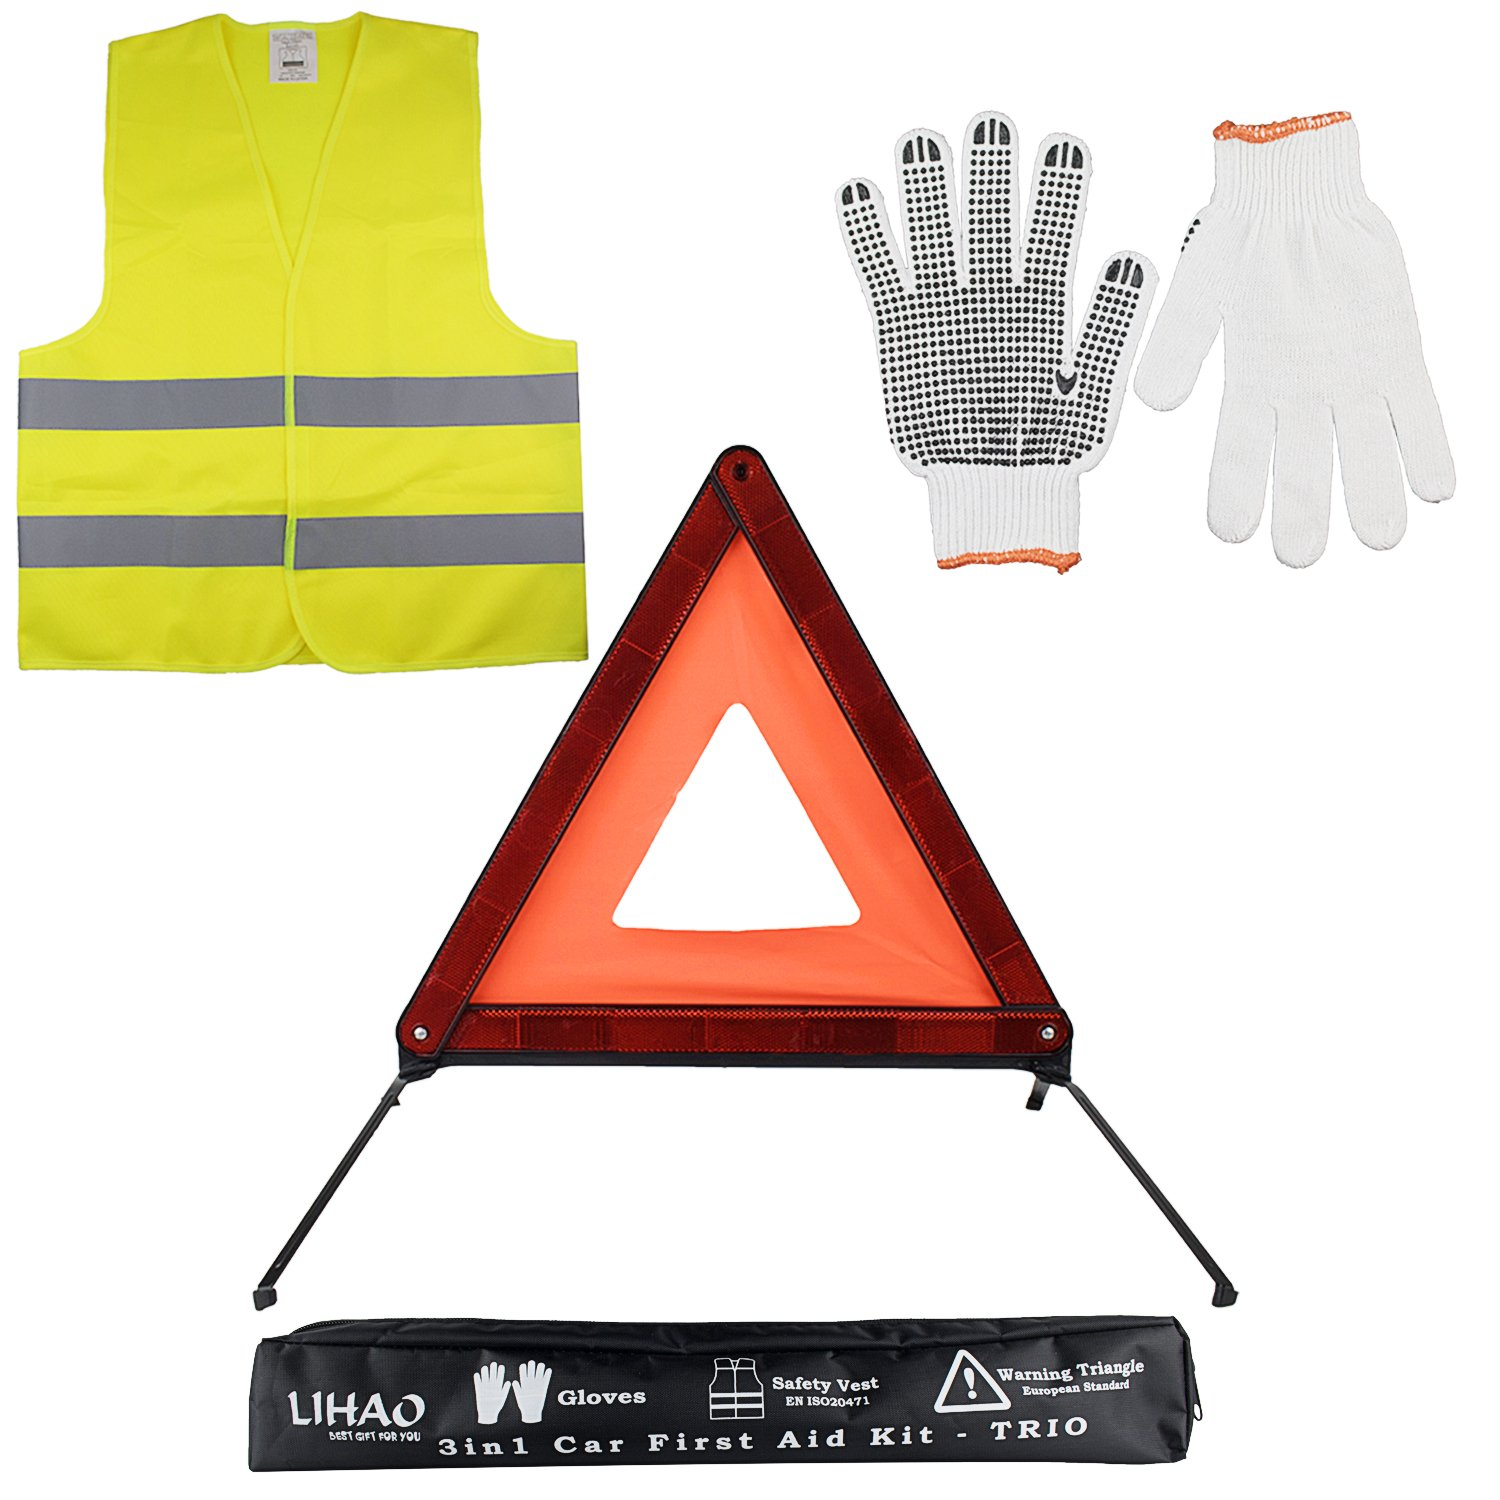 LIHAO Emergency Car Kit- Warning Triangle, Gloves, Safety Vest - Set of 3